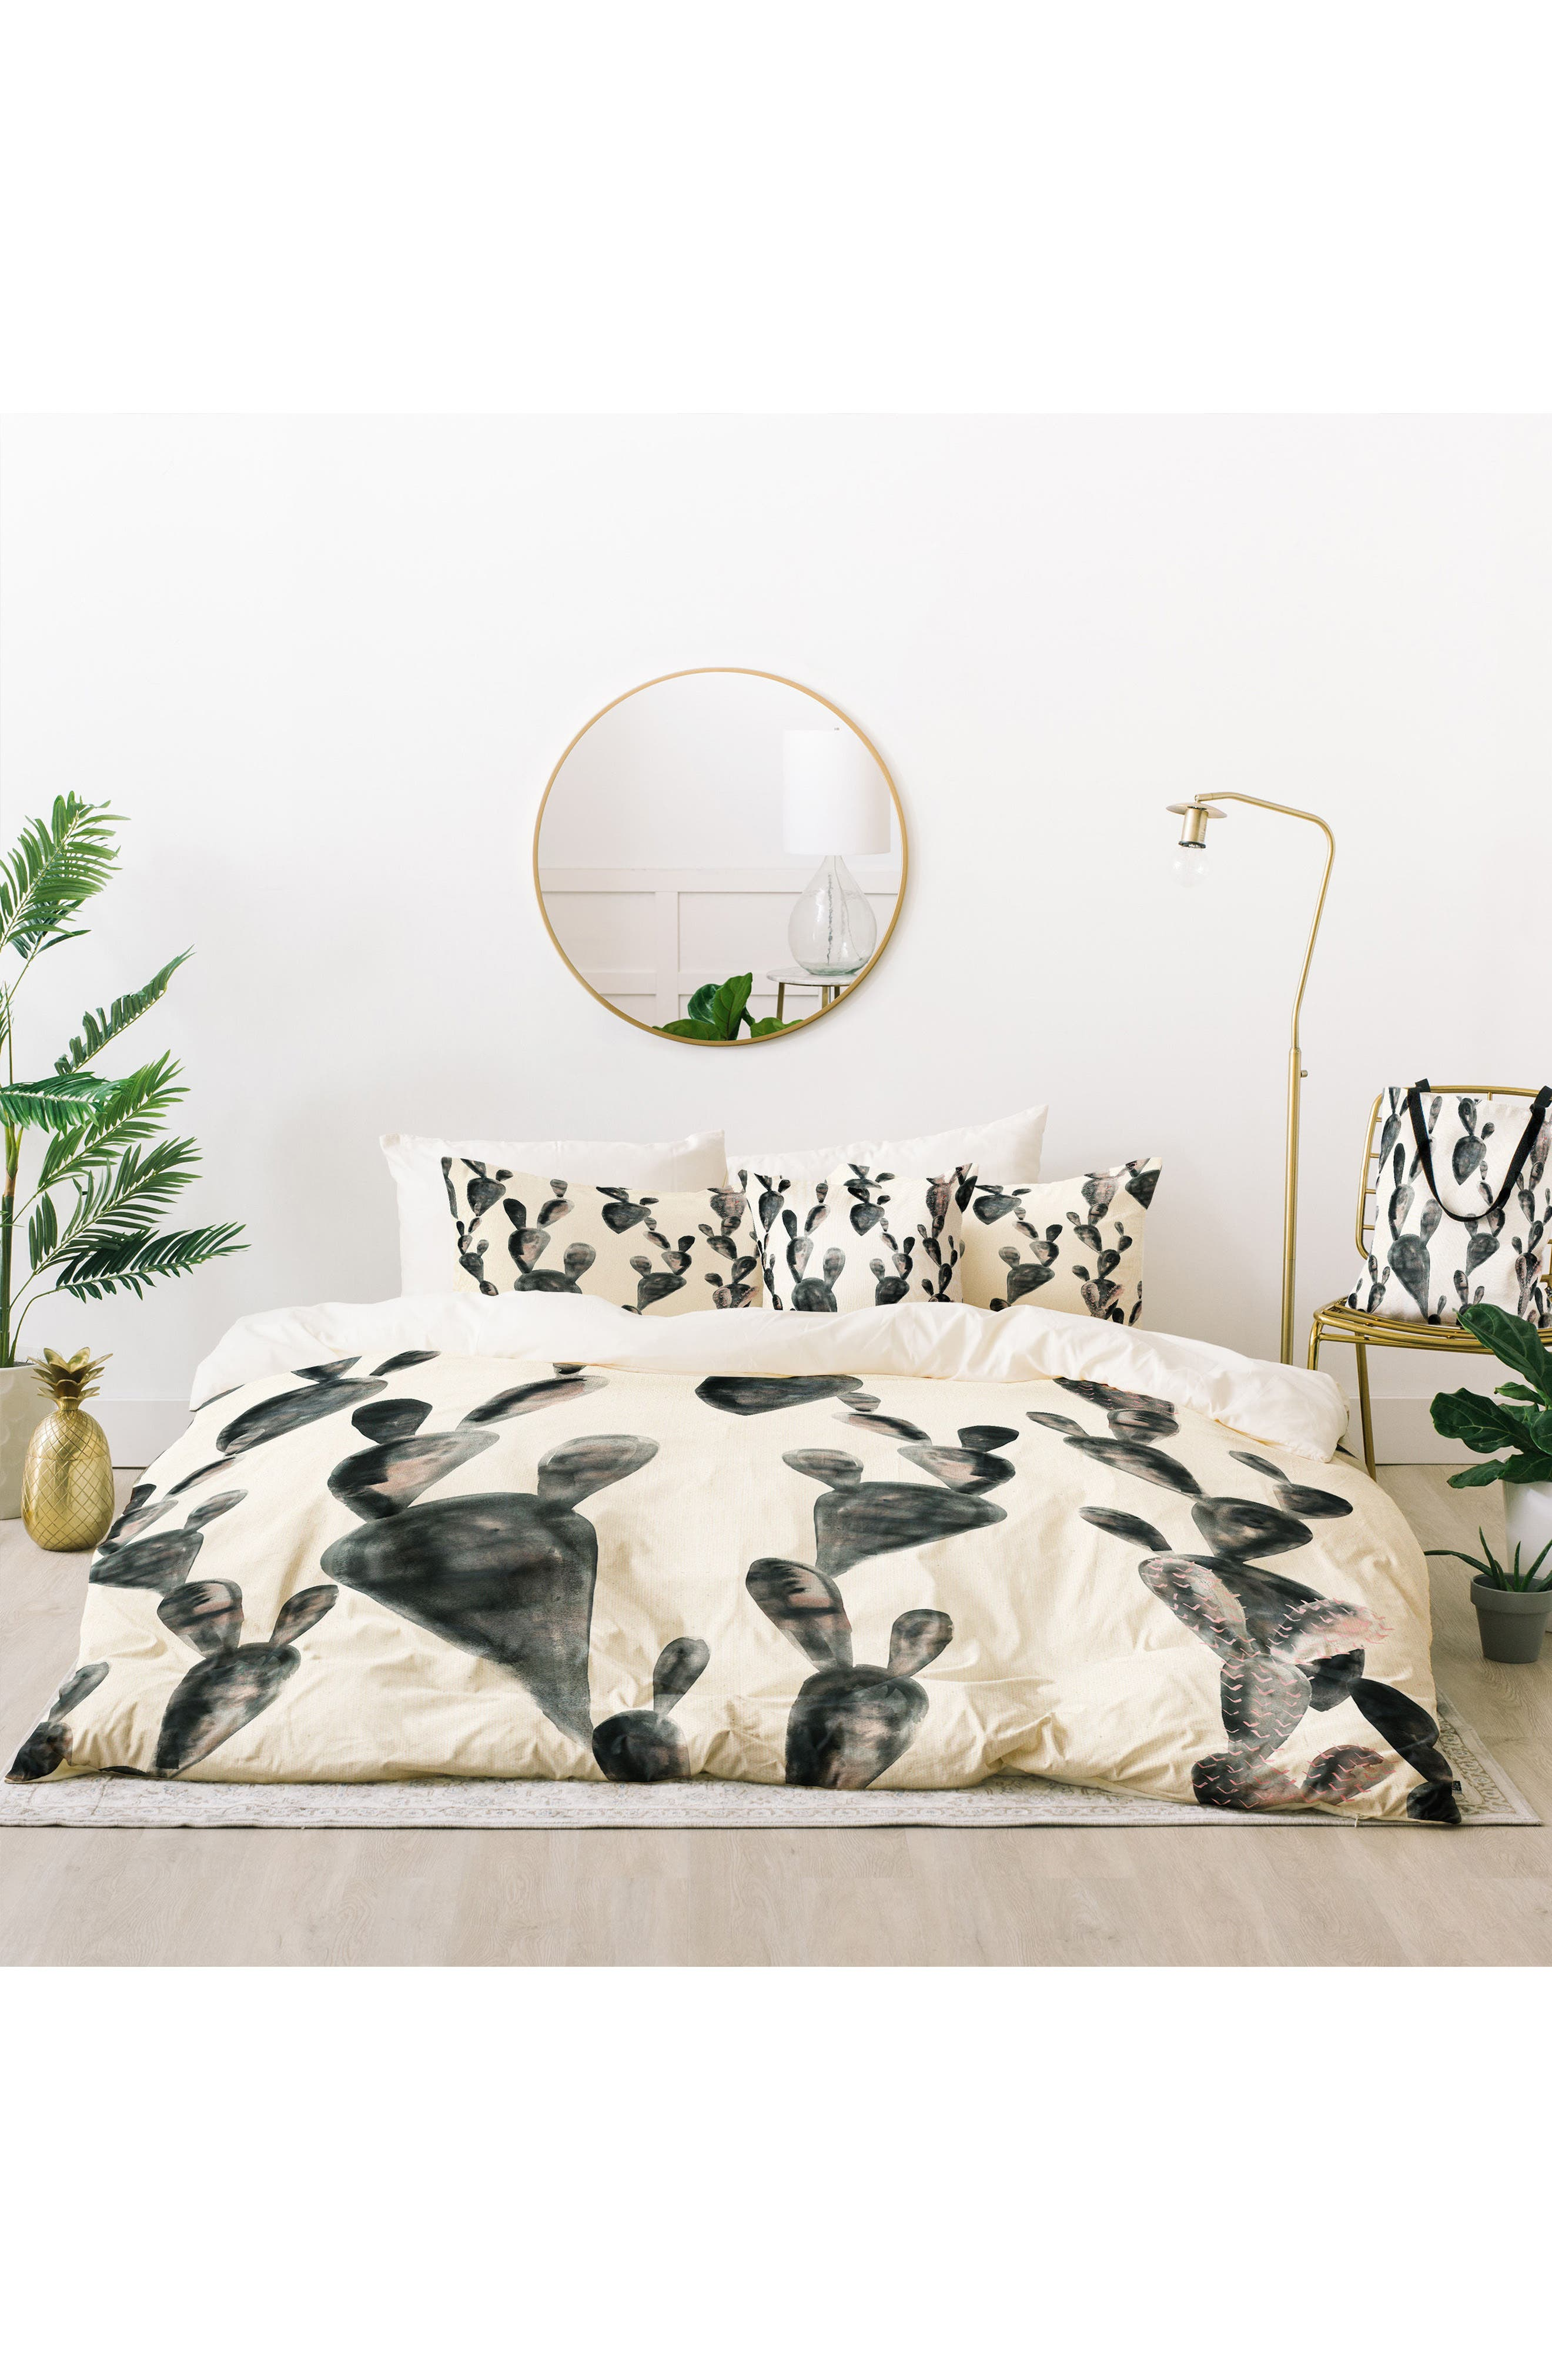 Midnight Cactus Bed in a Bag Duvet Cover, Sham & Accent Pillow Set,                             Main thumbnail 1, color,                             Charcoal